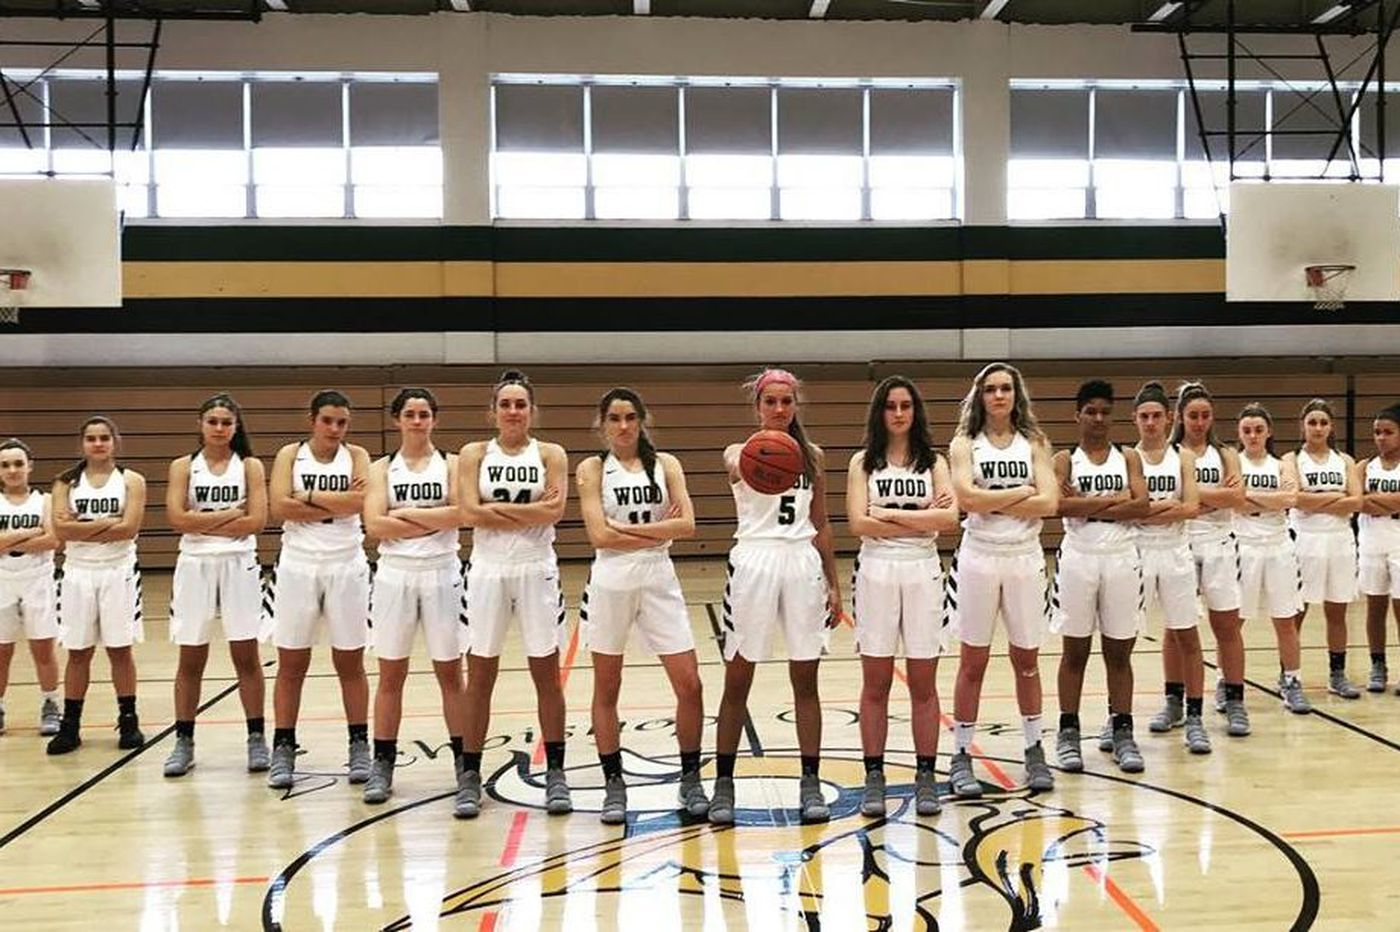 Archbishop Wood girls' basketball is ranked nationally